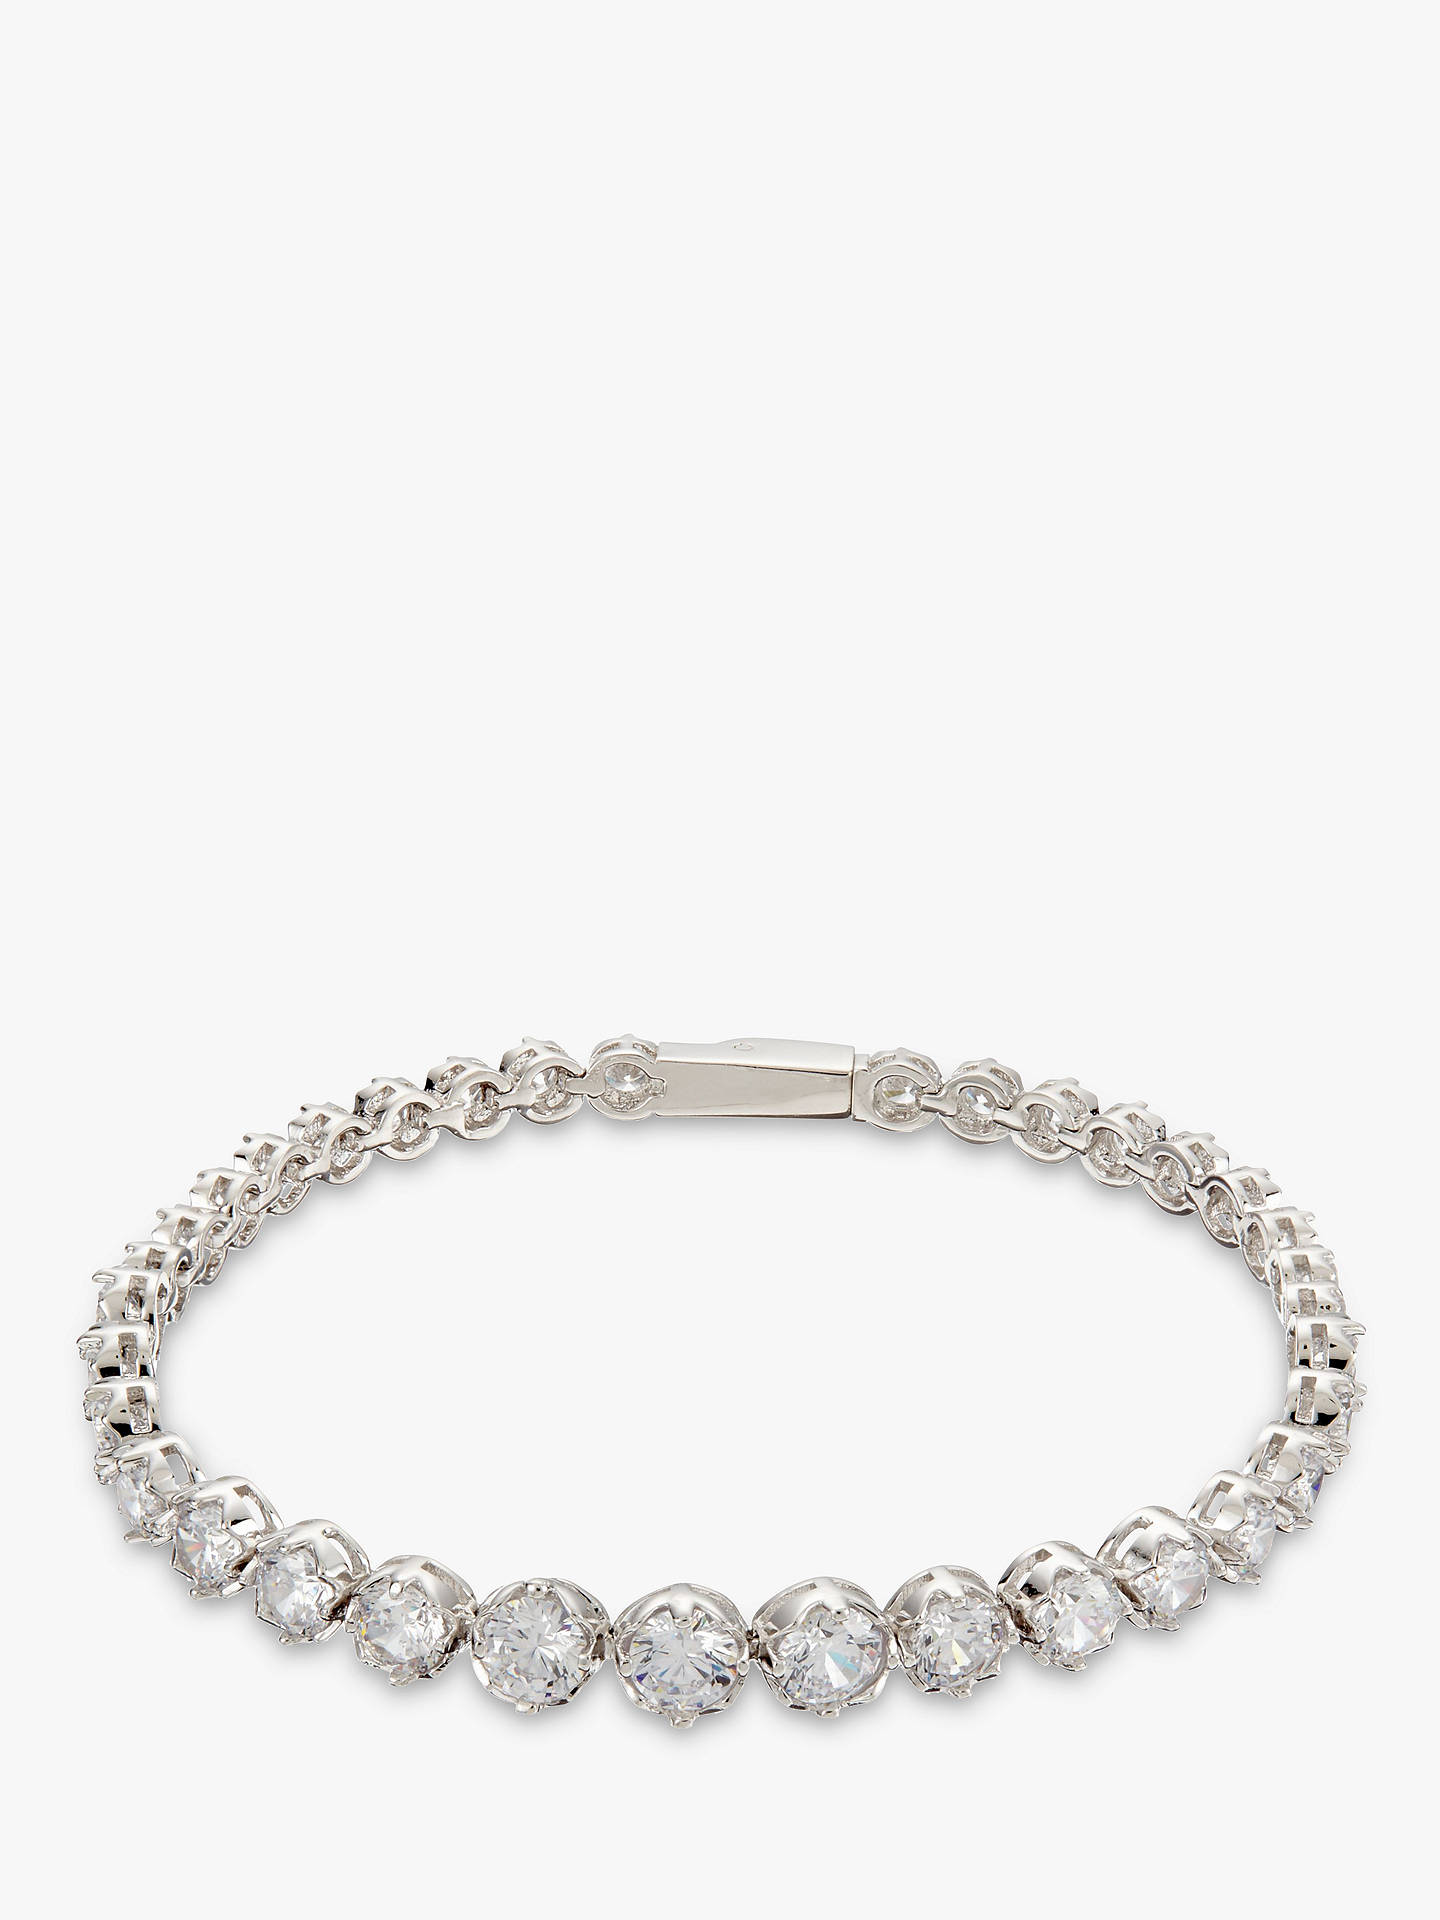 Ivory & Co. Limelight Graduating Cubic Zirconia Tennis